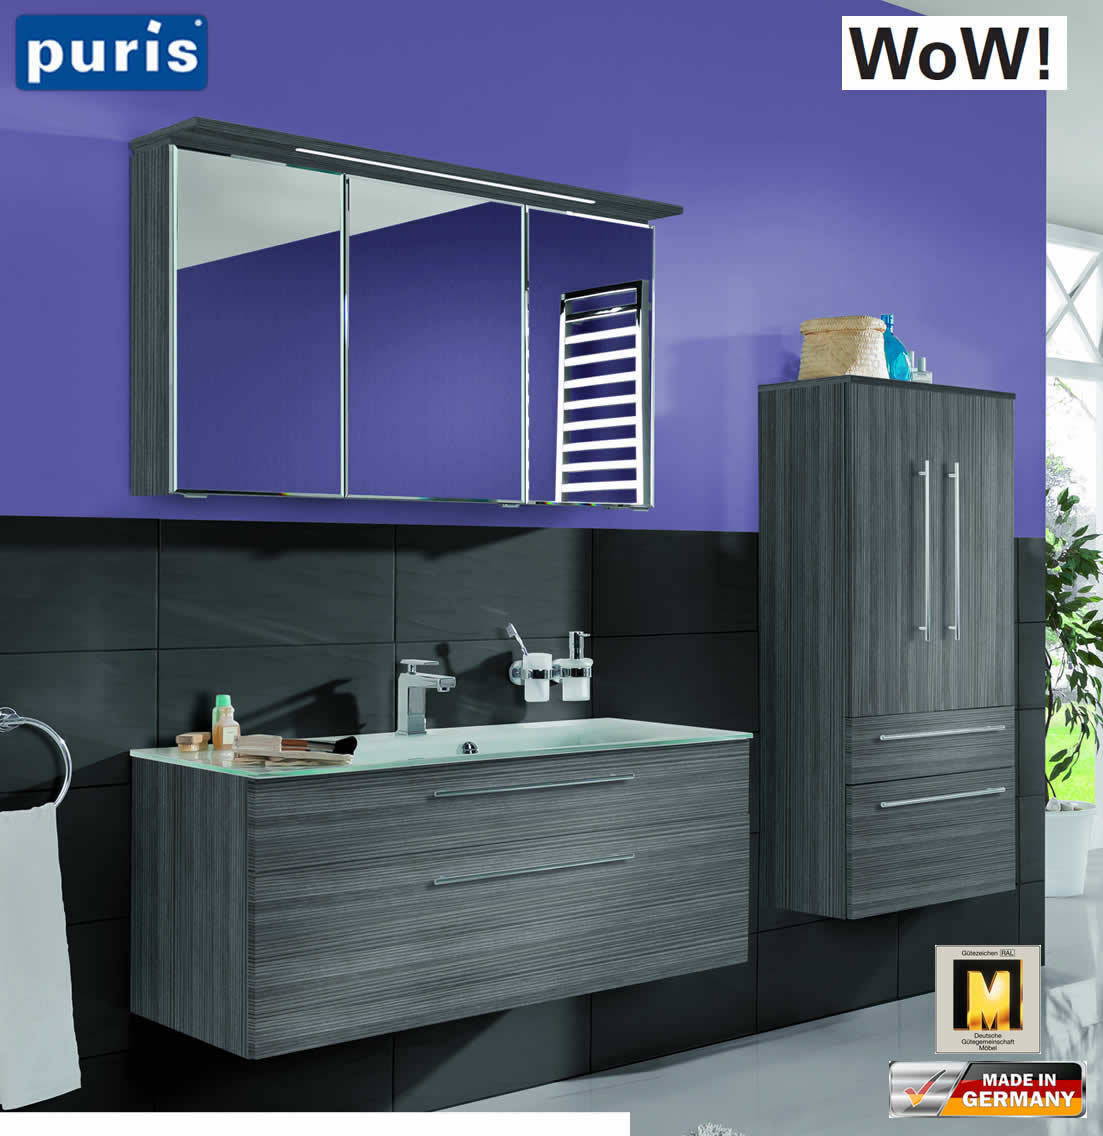 puris wow badm bel set 110 cm in hacienda grau 3tlg mit glaswaschtisch impuls home. Black Bedroom Furniture Sets. Home Design Ideas